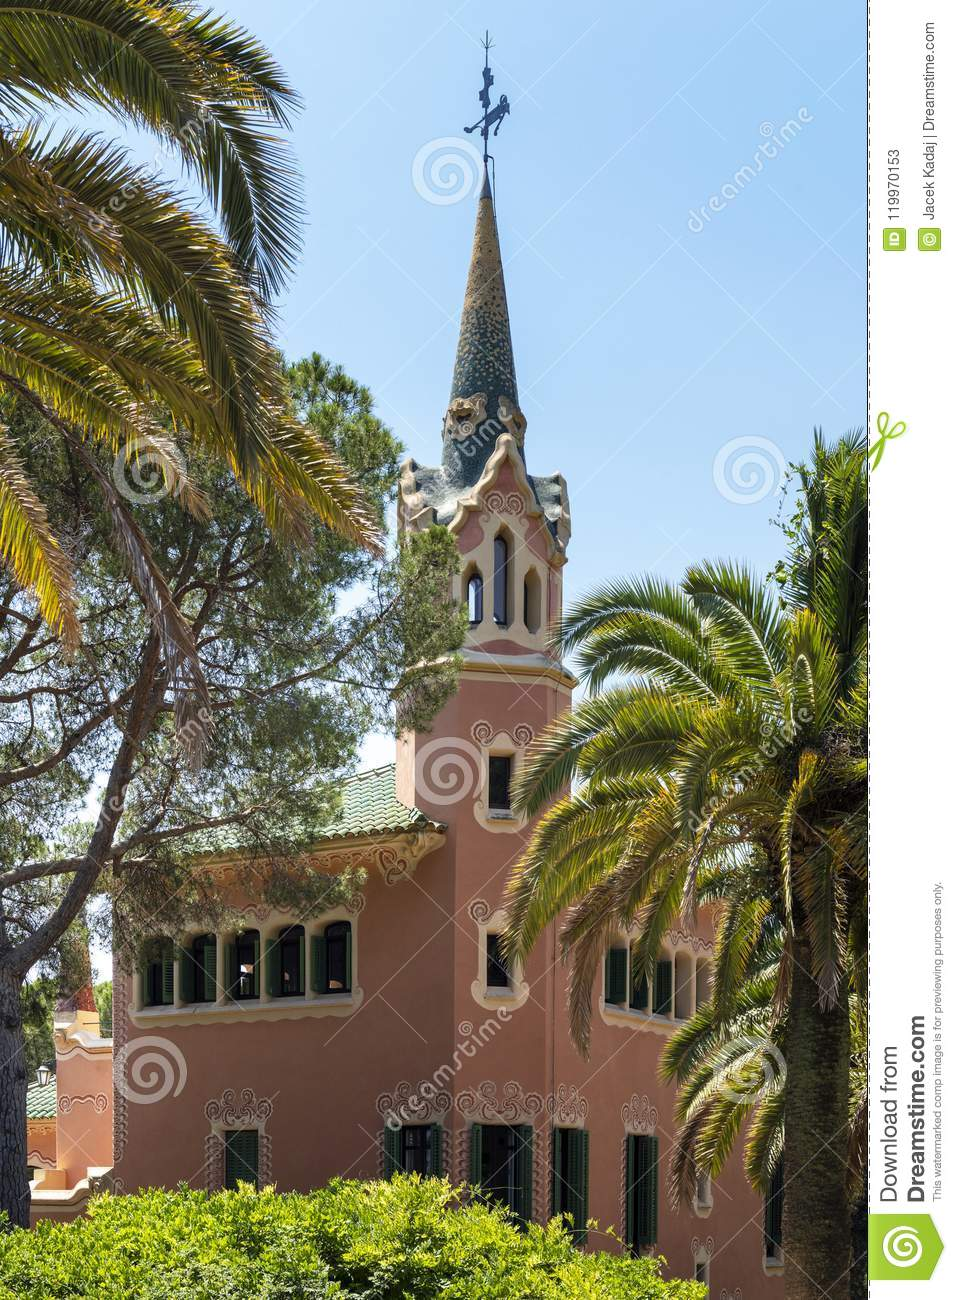 Gaudi house in Park Guell